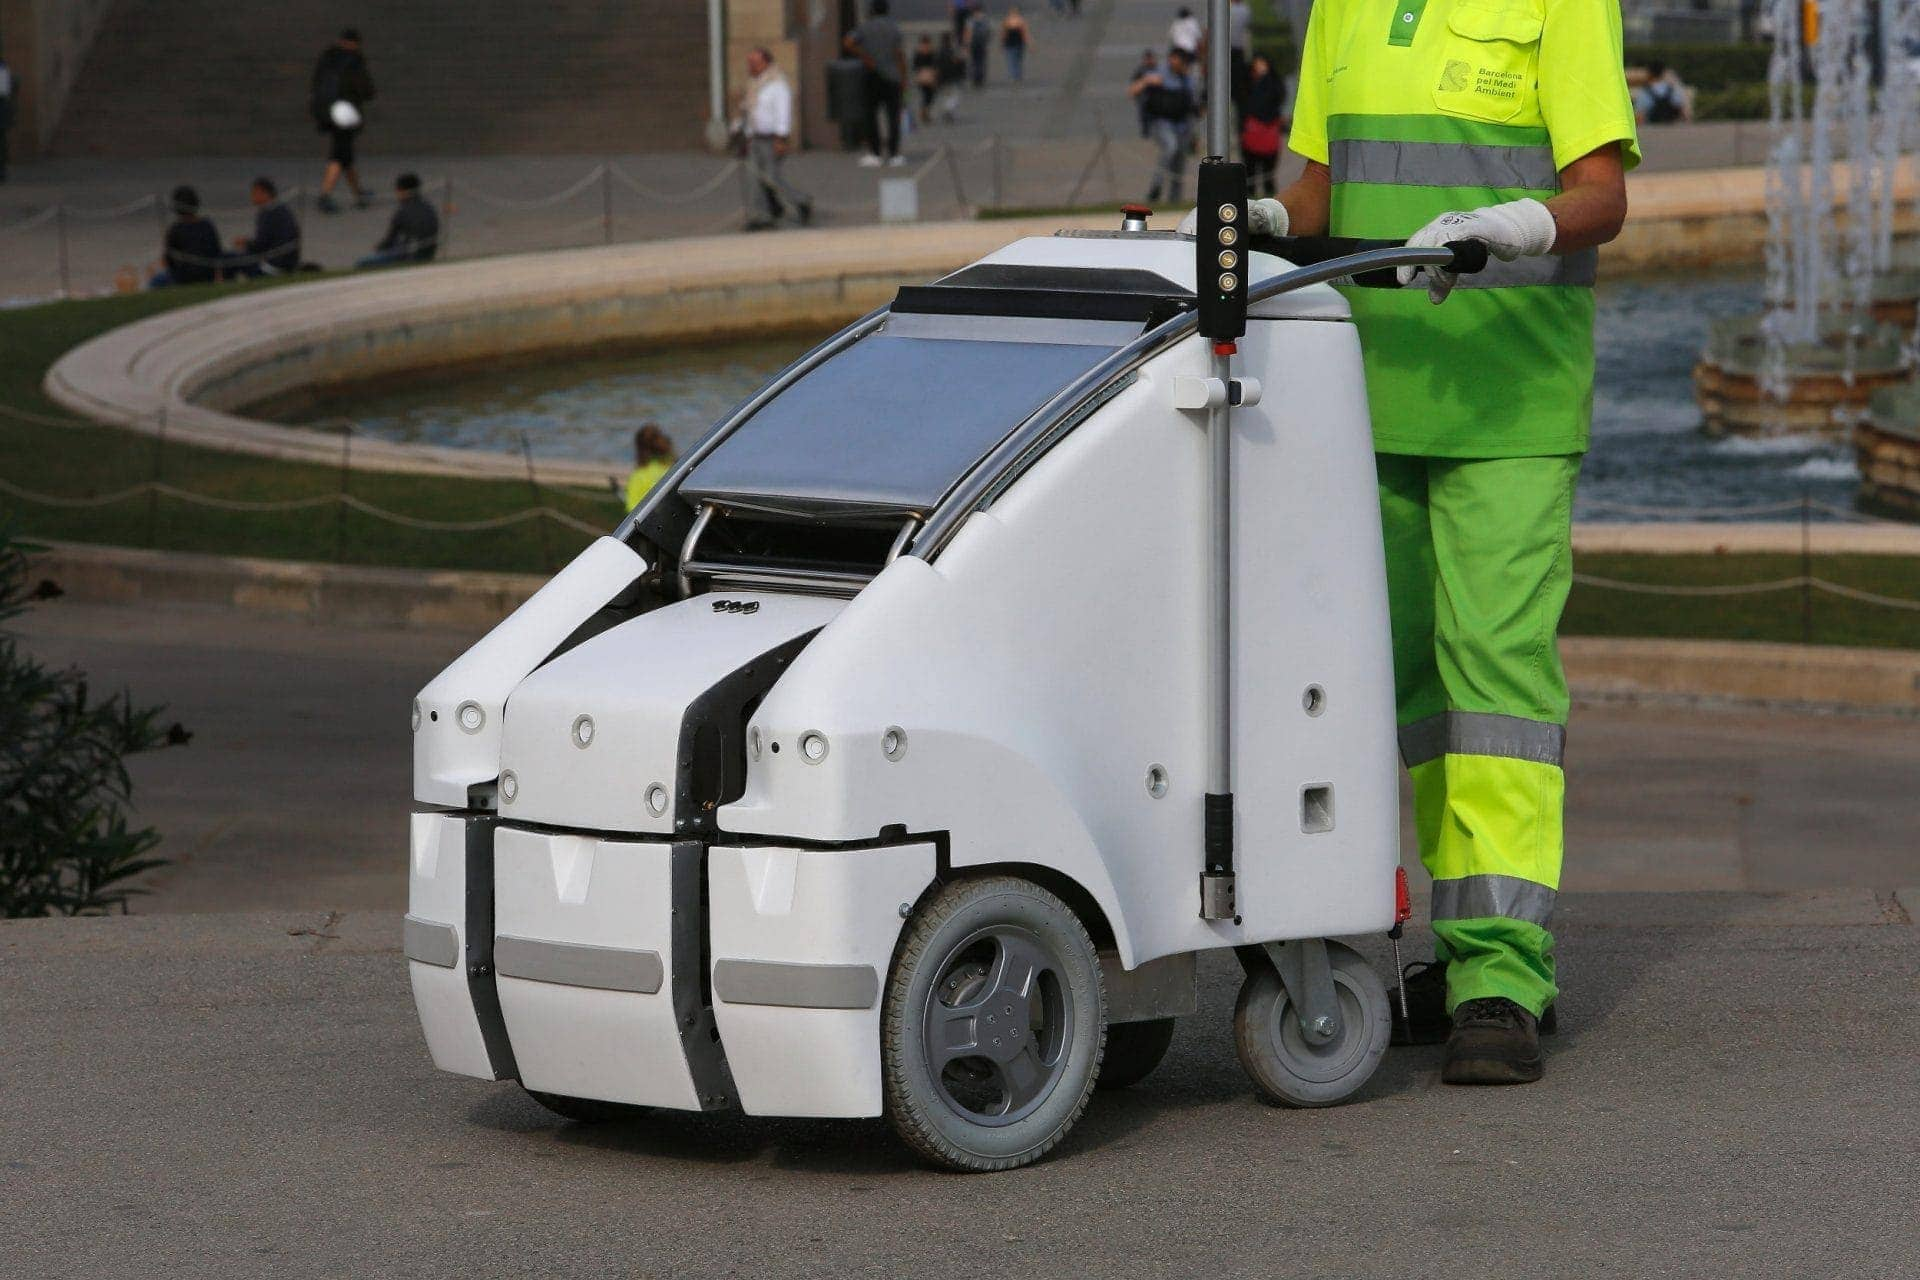 The Street Cleaning Robot A1A3